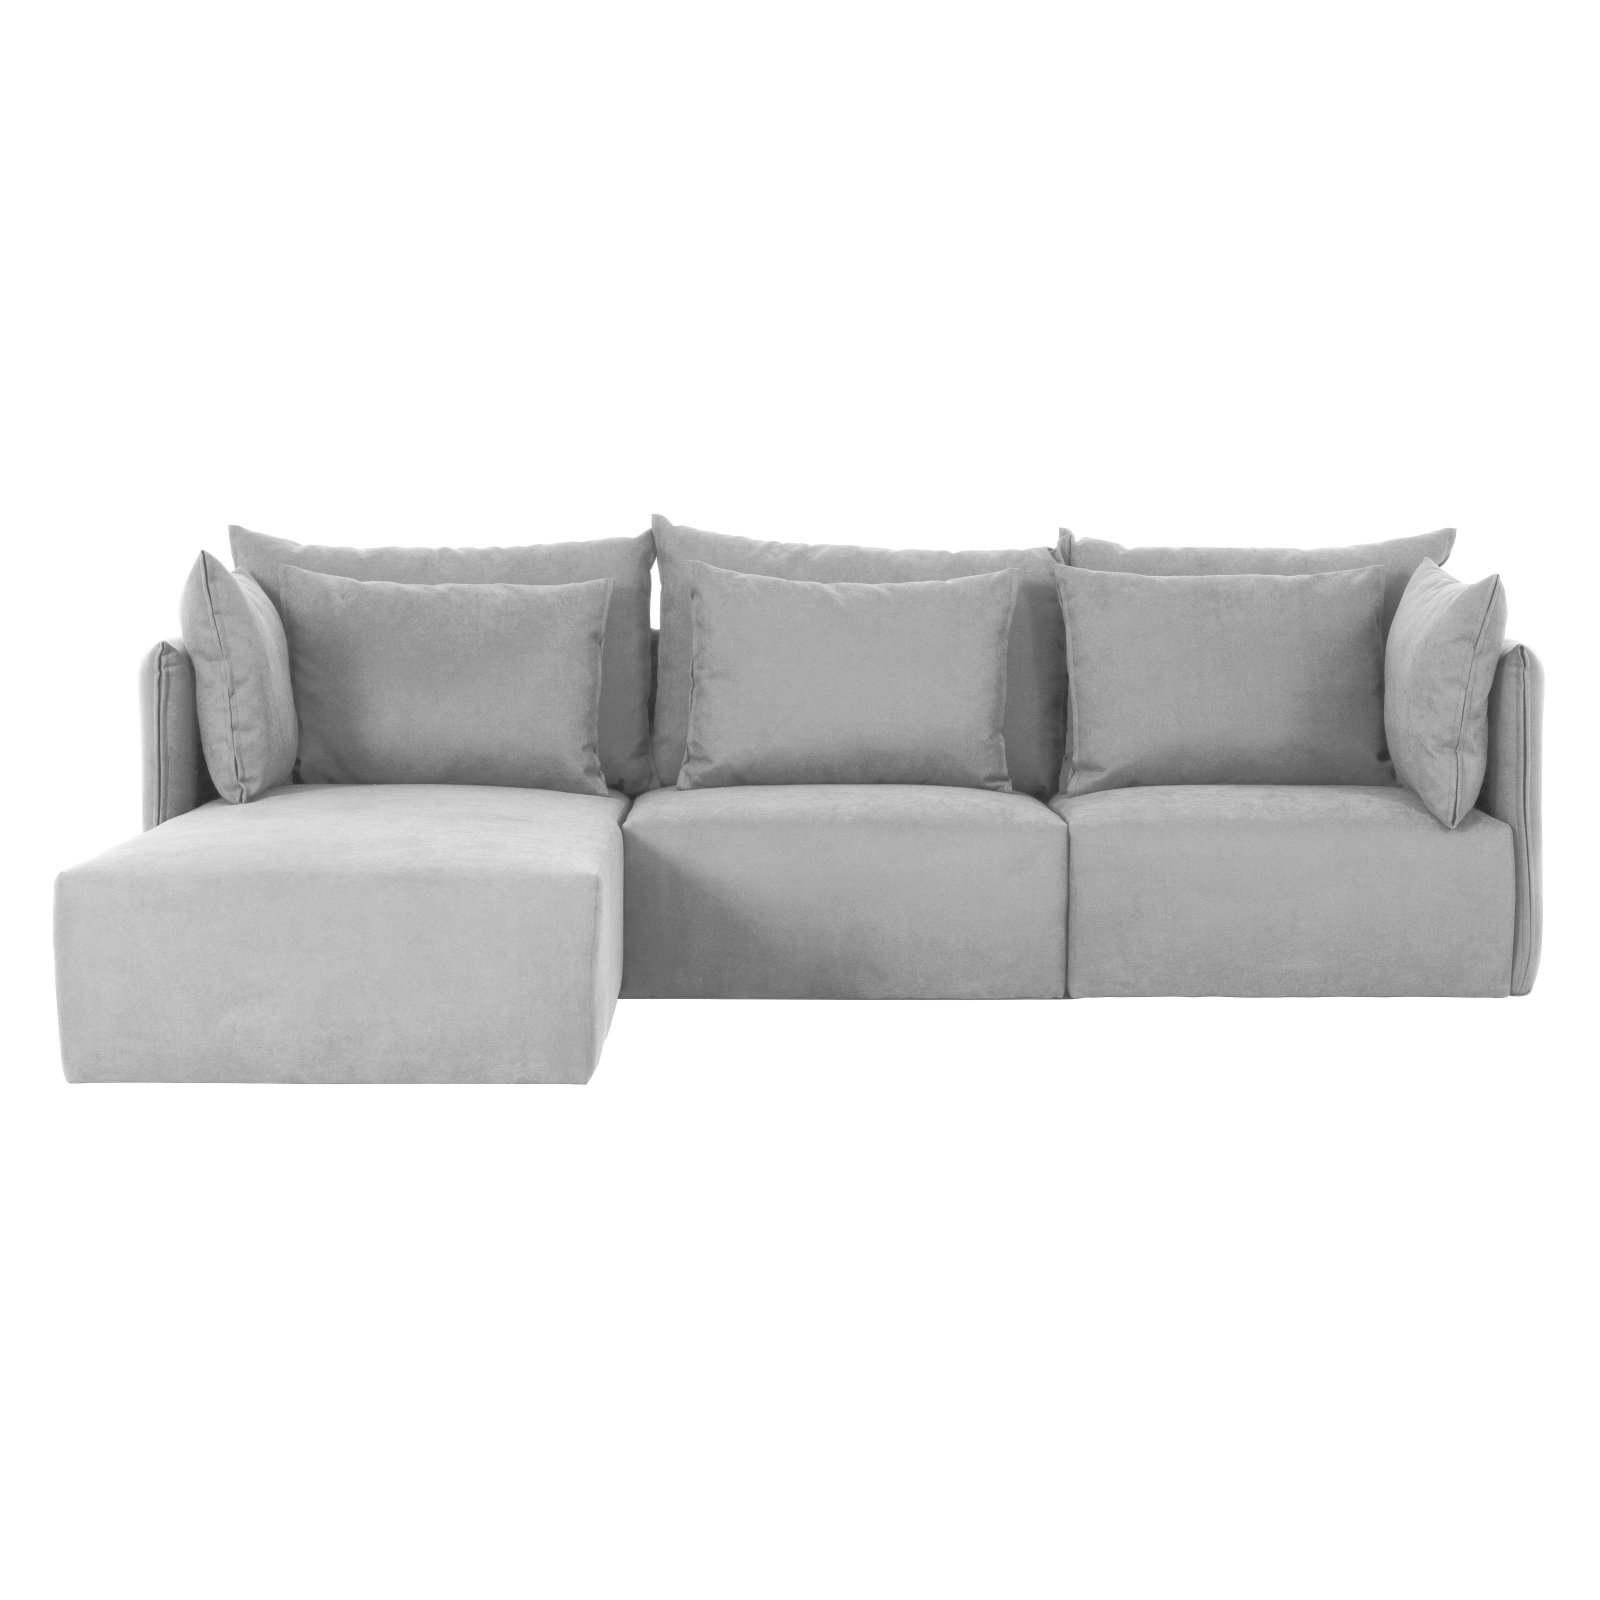 Tema Furniture Dune Sectional Sofa With Chaise   Walmart.com